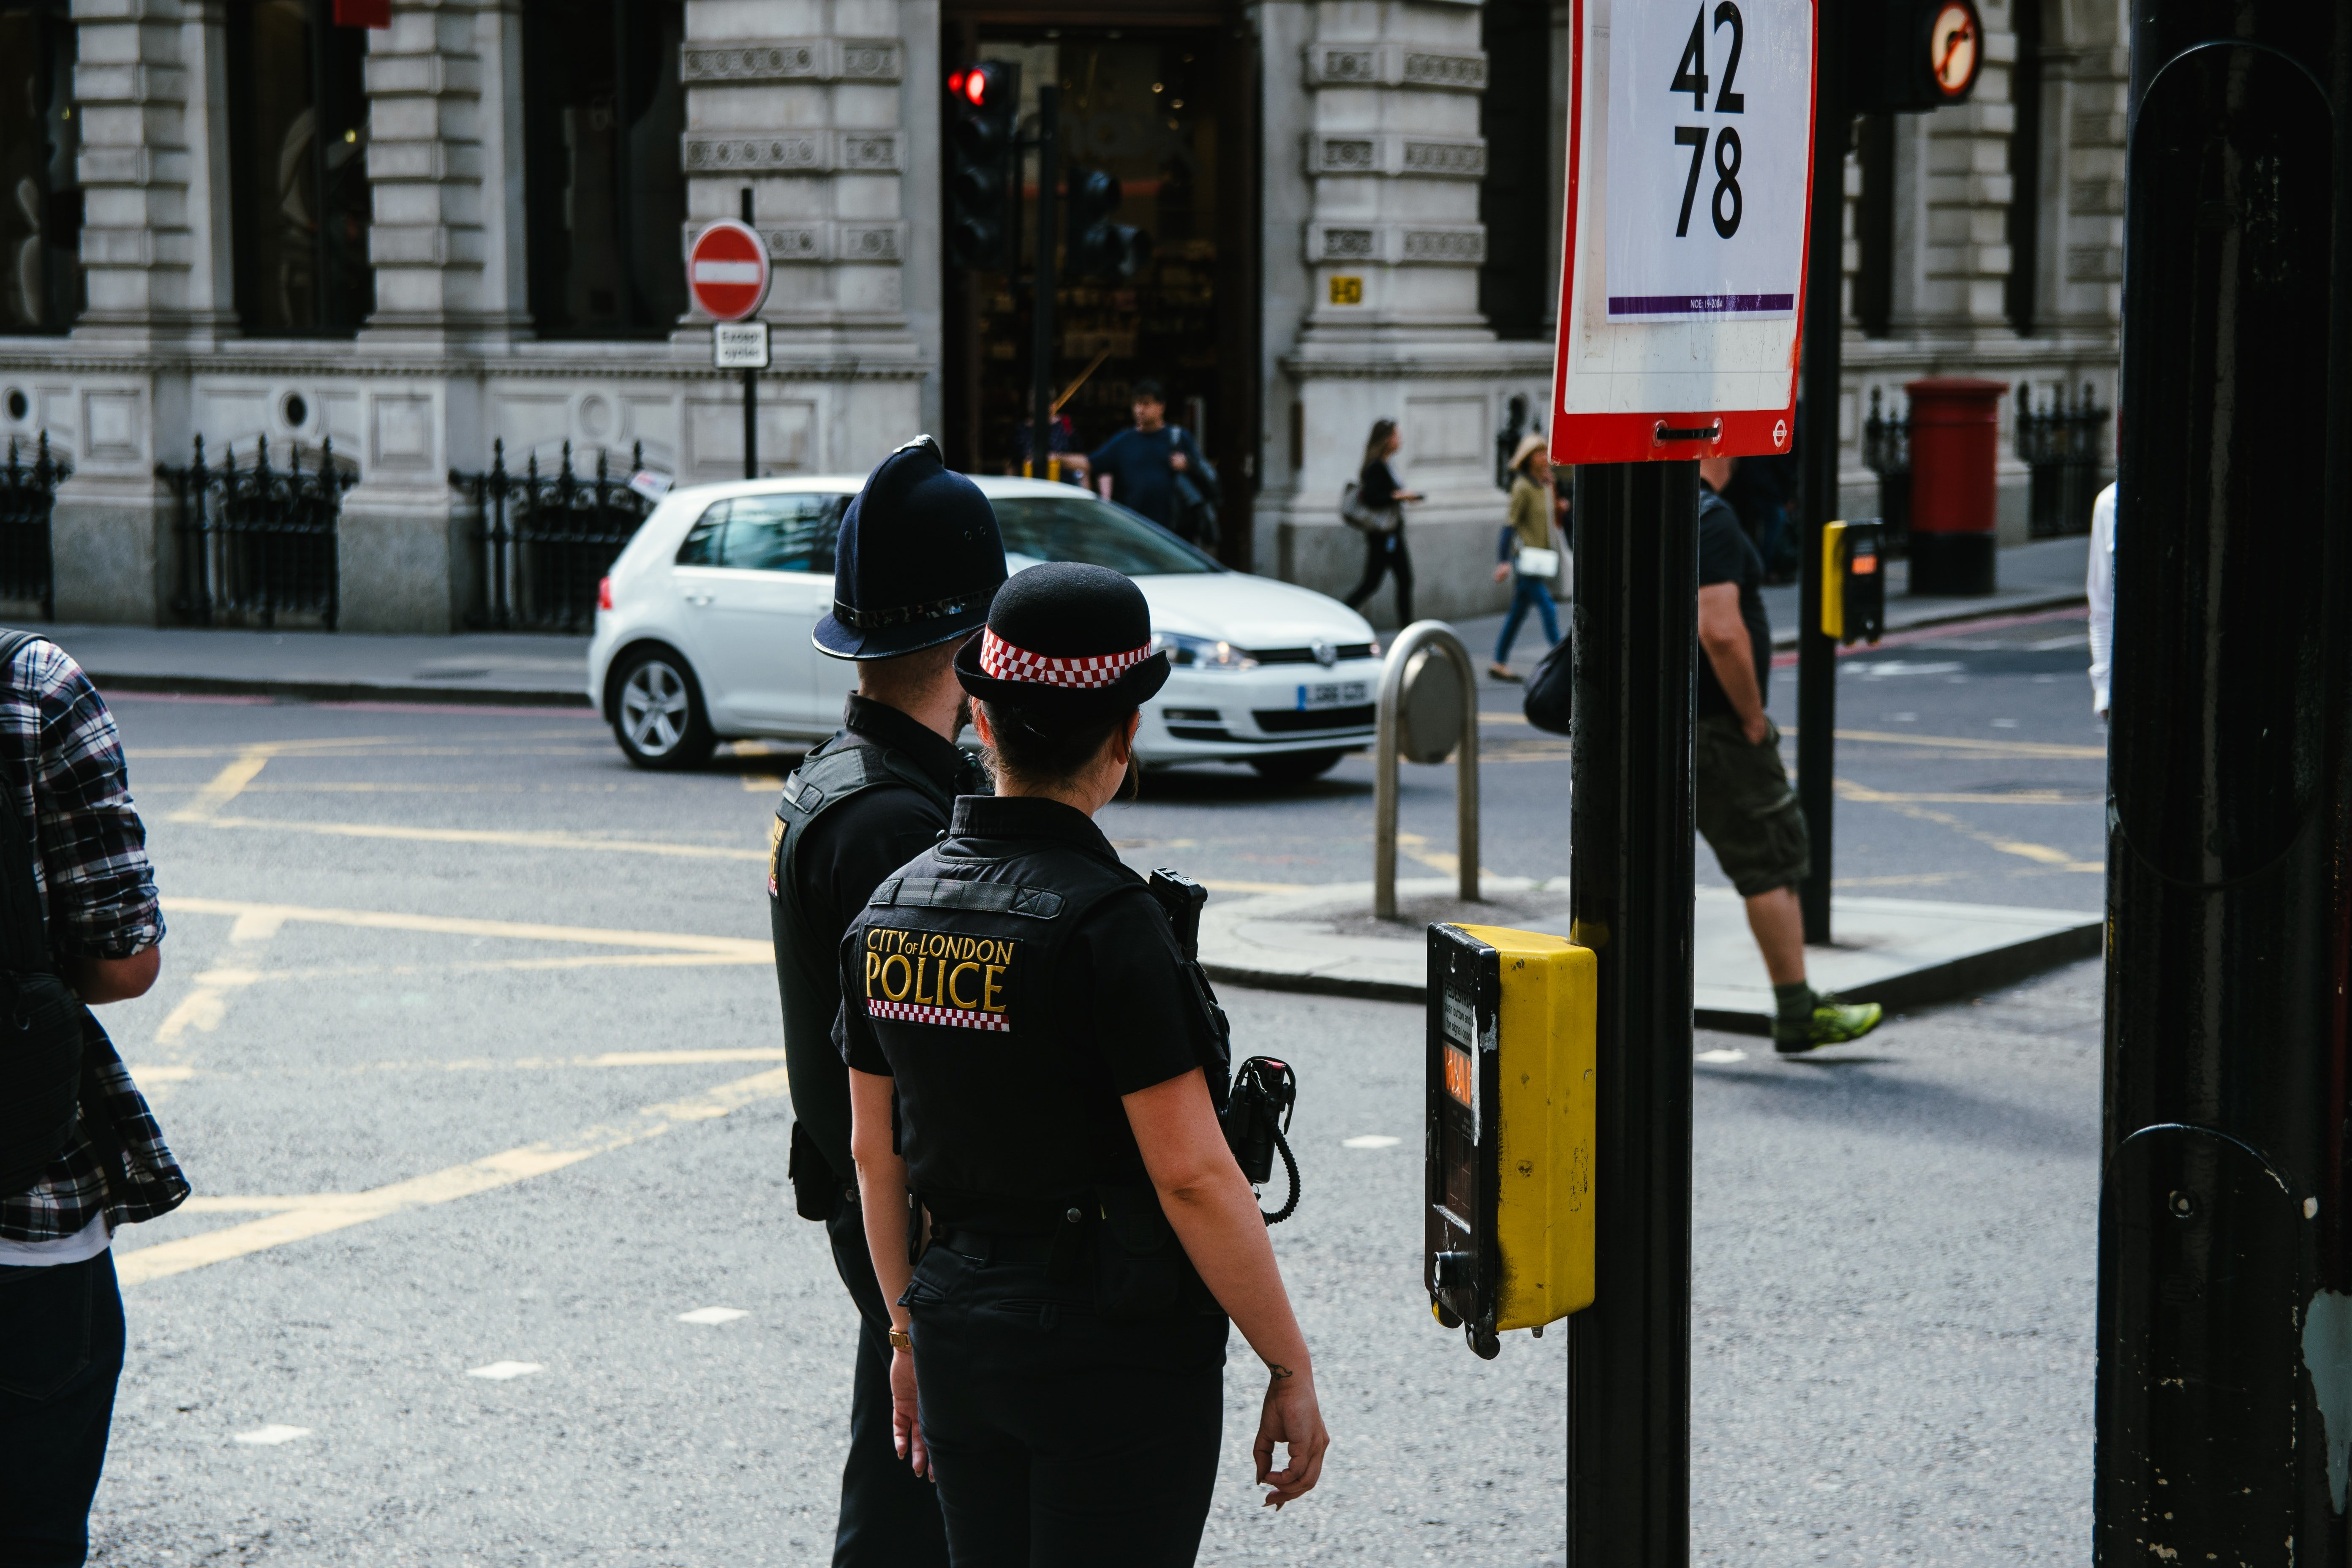 Photo of police officers on the street   Source: Unsplash